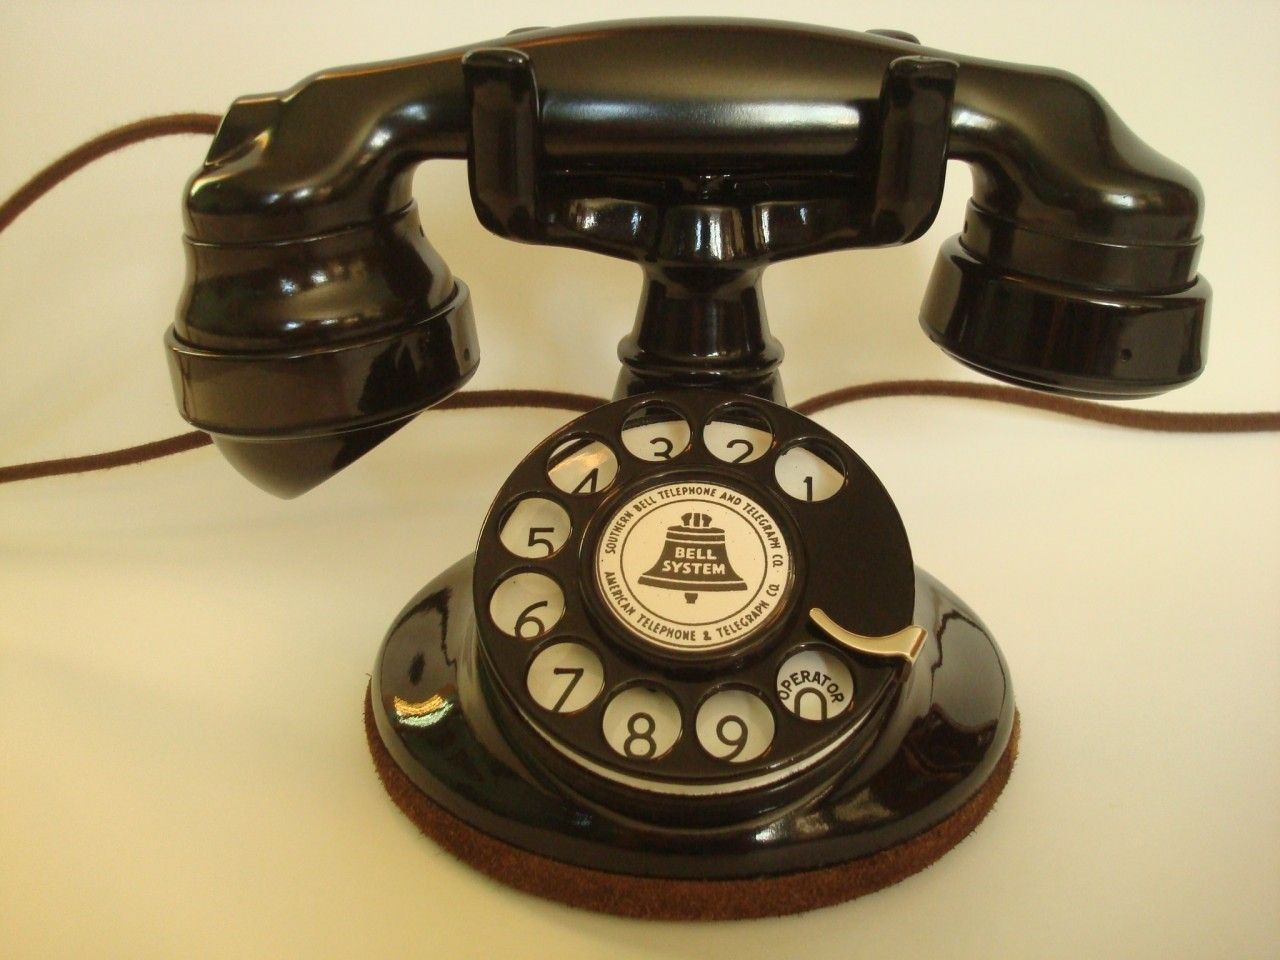 hight resolution of vintage telephones western electric 102 telephone antique telephone